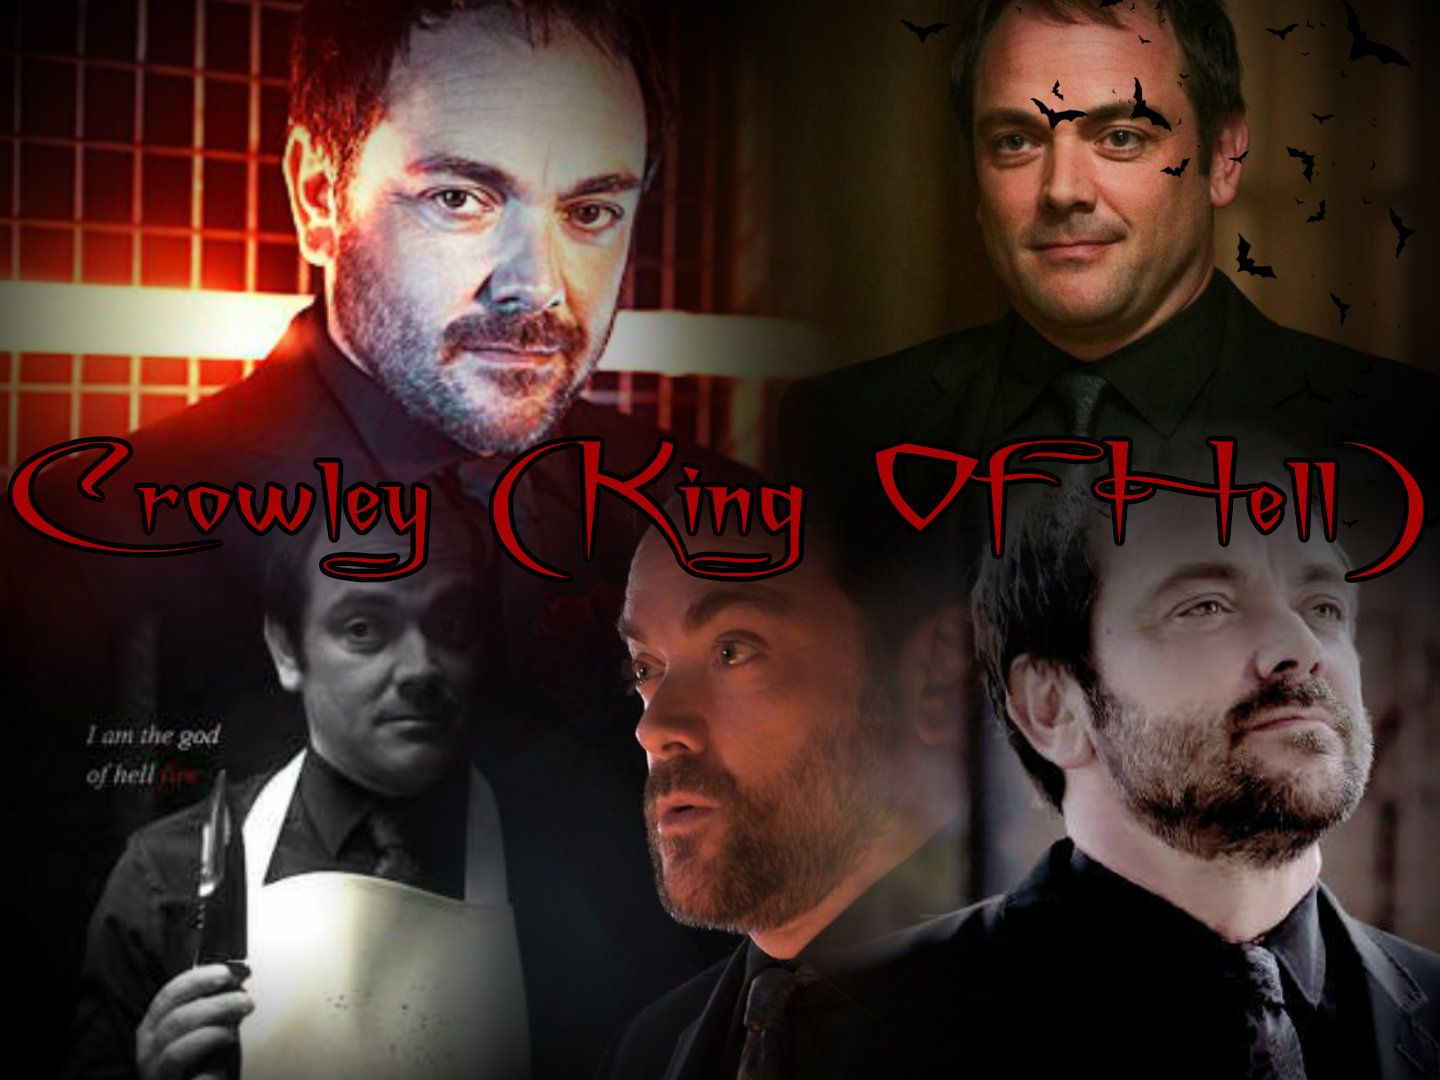 Crowley (King of Hell)